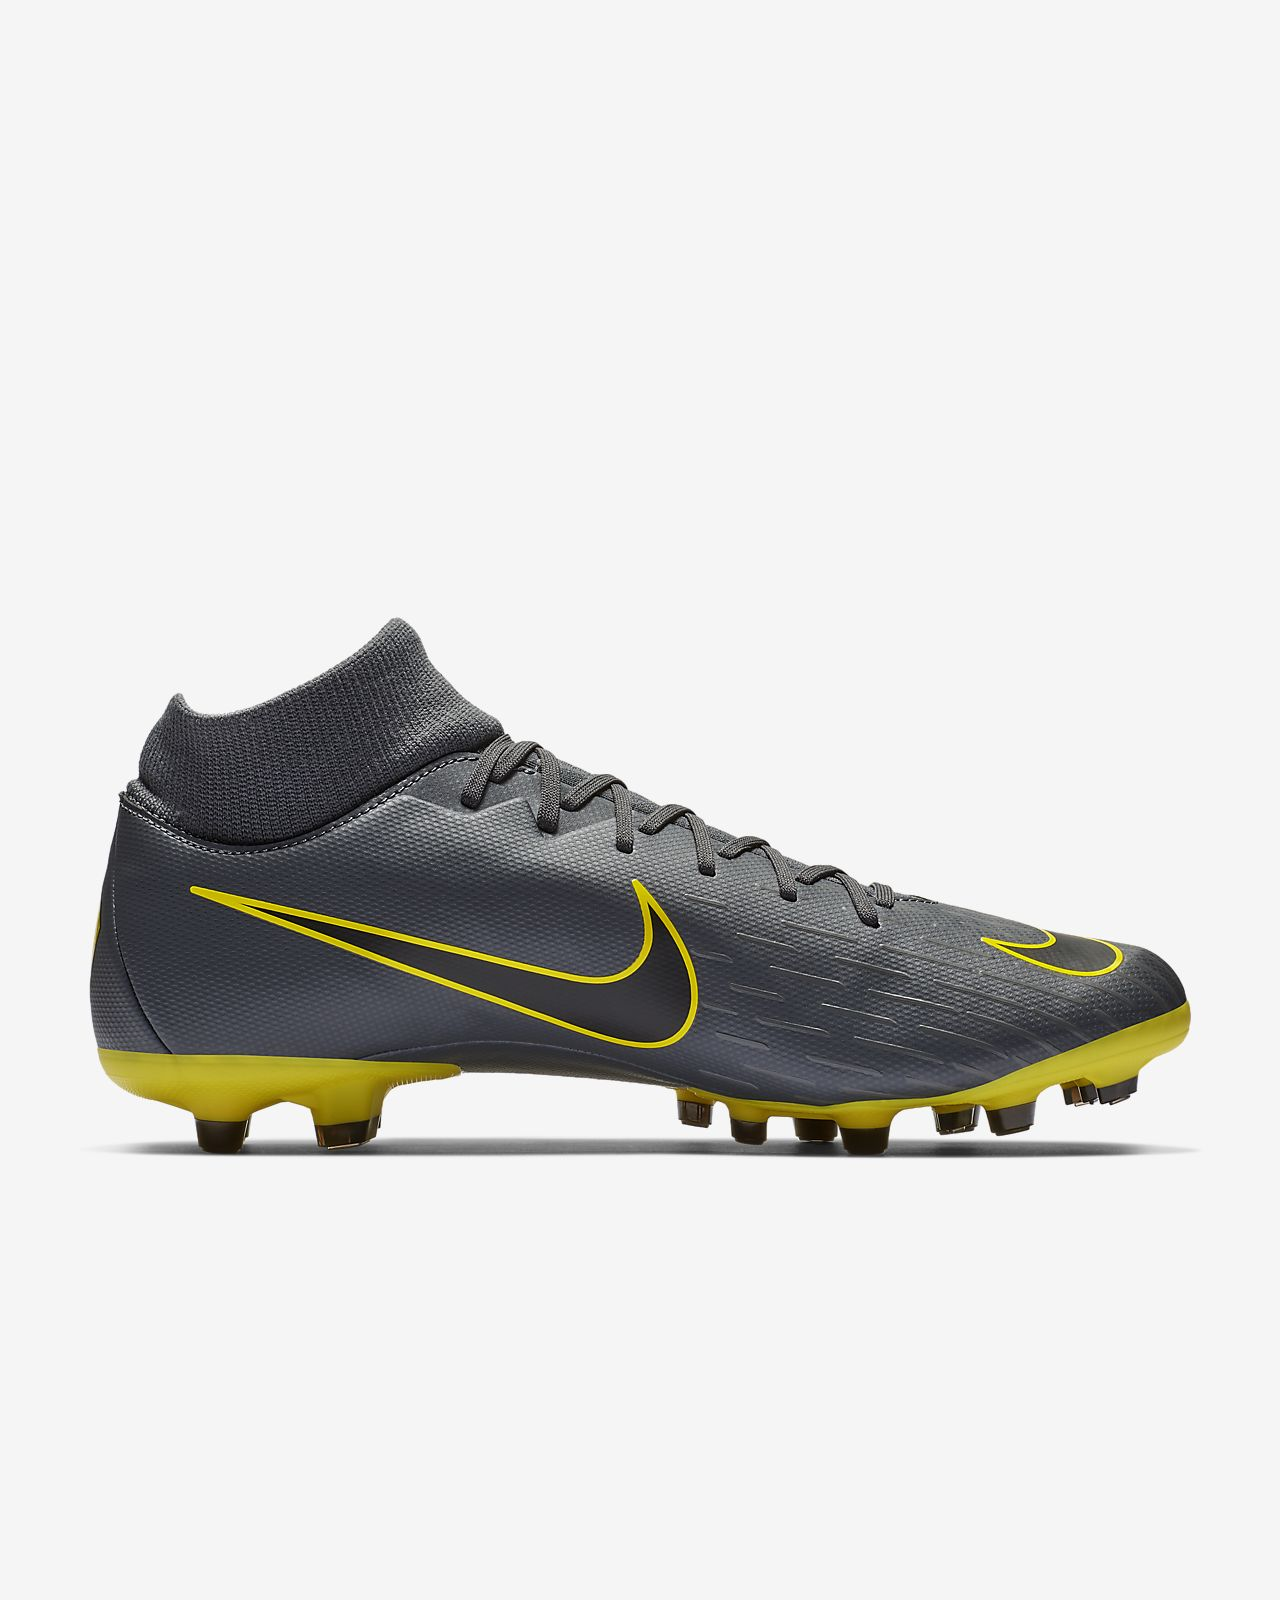 6aac1a86b Nike Mercurial Superfly 6 Academy MG Multi-Ground Football Boot ...